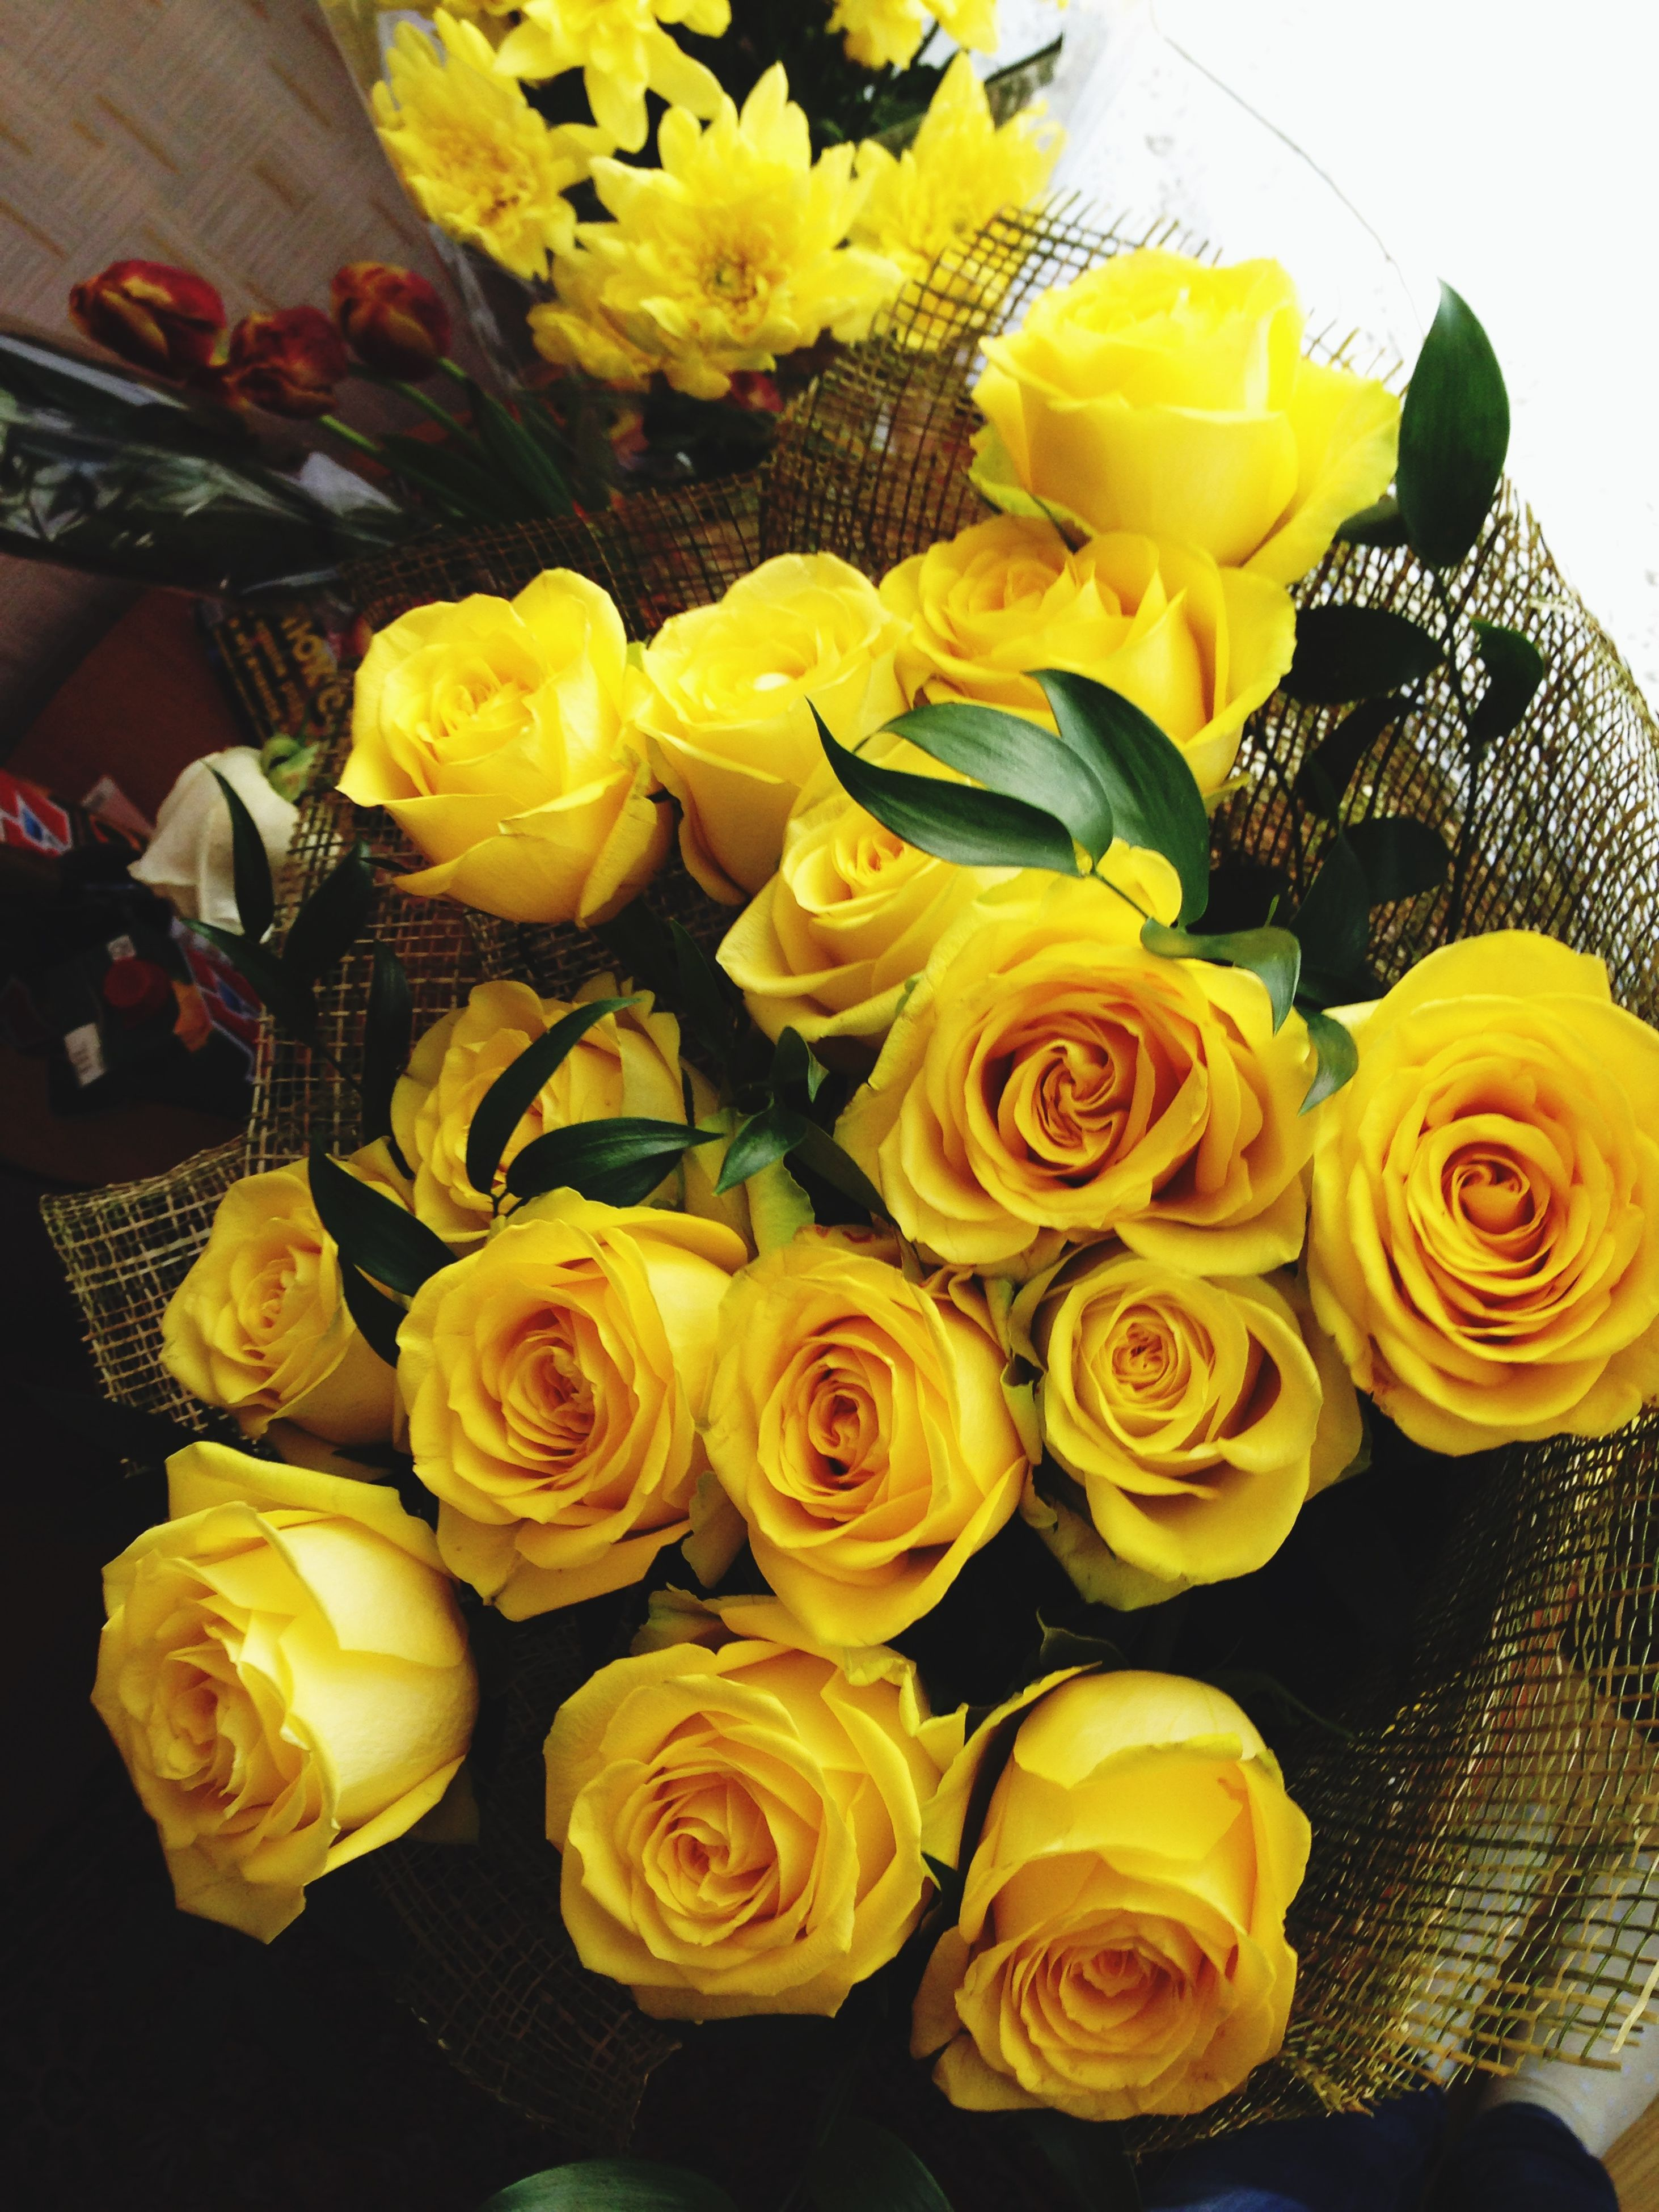 freshness, flower, indoors, variation, fragility, rose - flower, yellow, still life, petal, flower head, multi colored, bouquet, high angle view, close-up, food and drink, arrangement, vase, table, food, flower arrangement